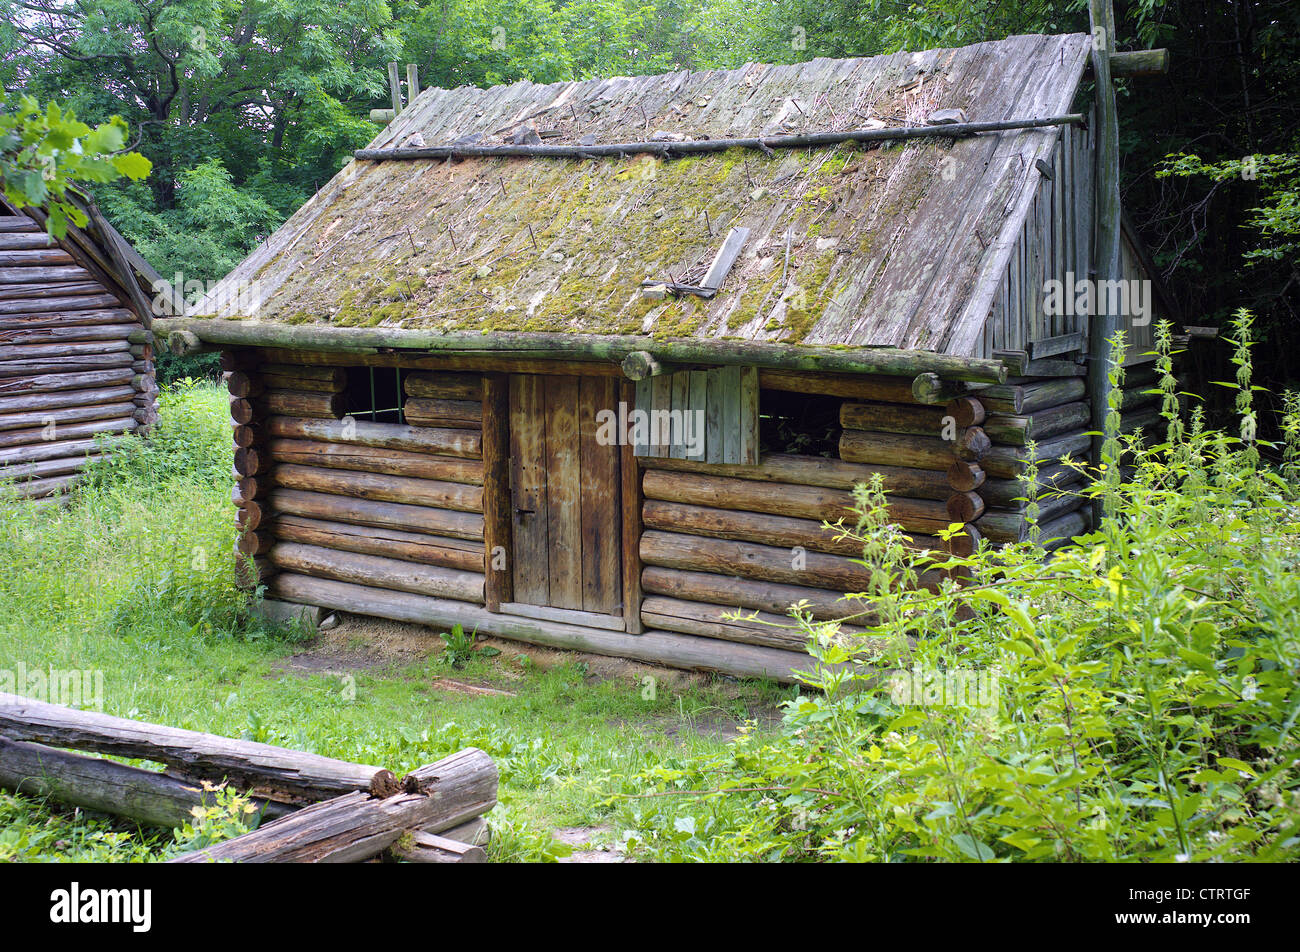 Wooden hut reconstruction Bedkowice ancient Slavic dwelling Lower Silesia Poland - Stock Image